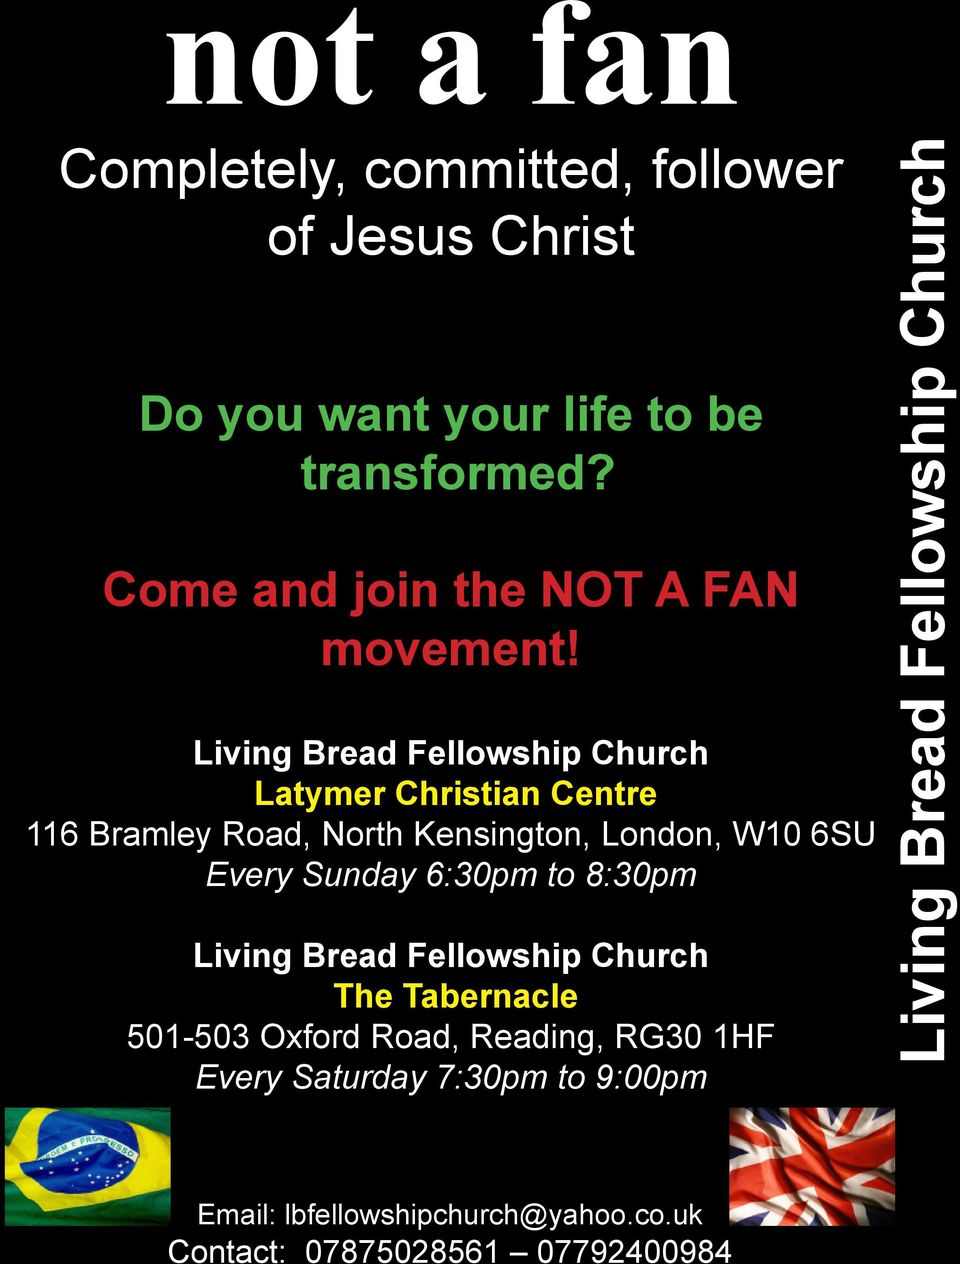 Living Bread Fellowship Church Latymer Christian Centre 116 Bramley Road, North Kensington, London, W10 6SU Every Sunday 6:30pm to